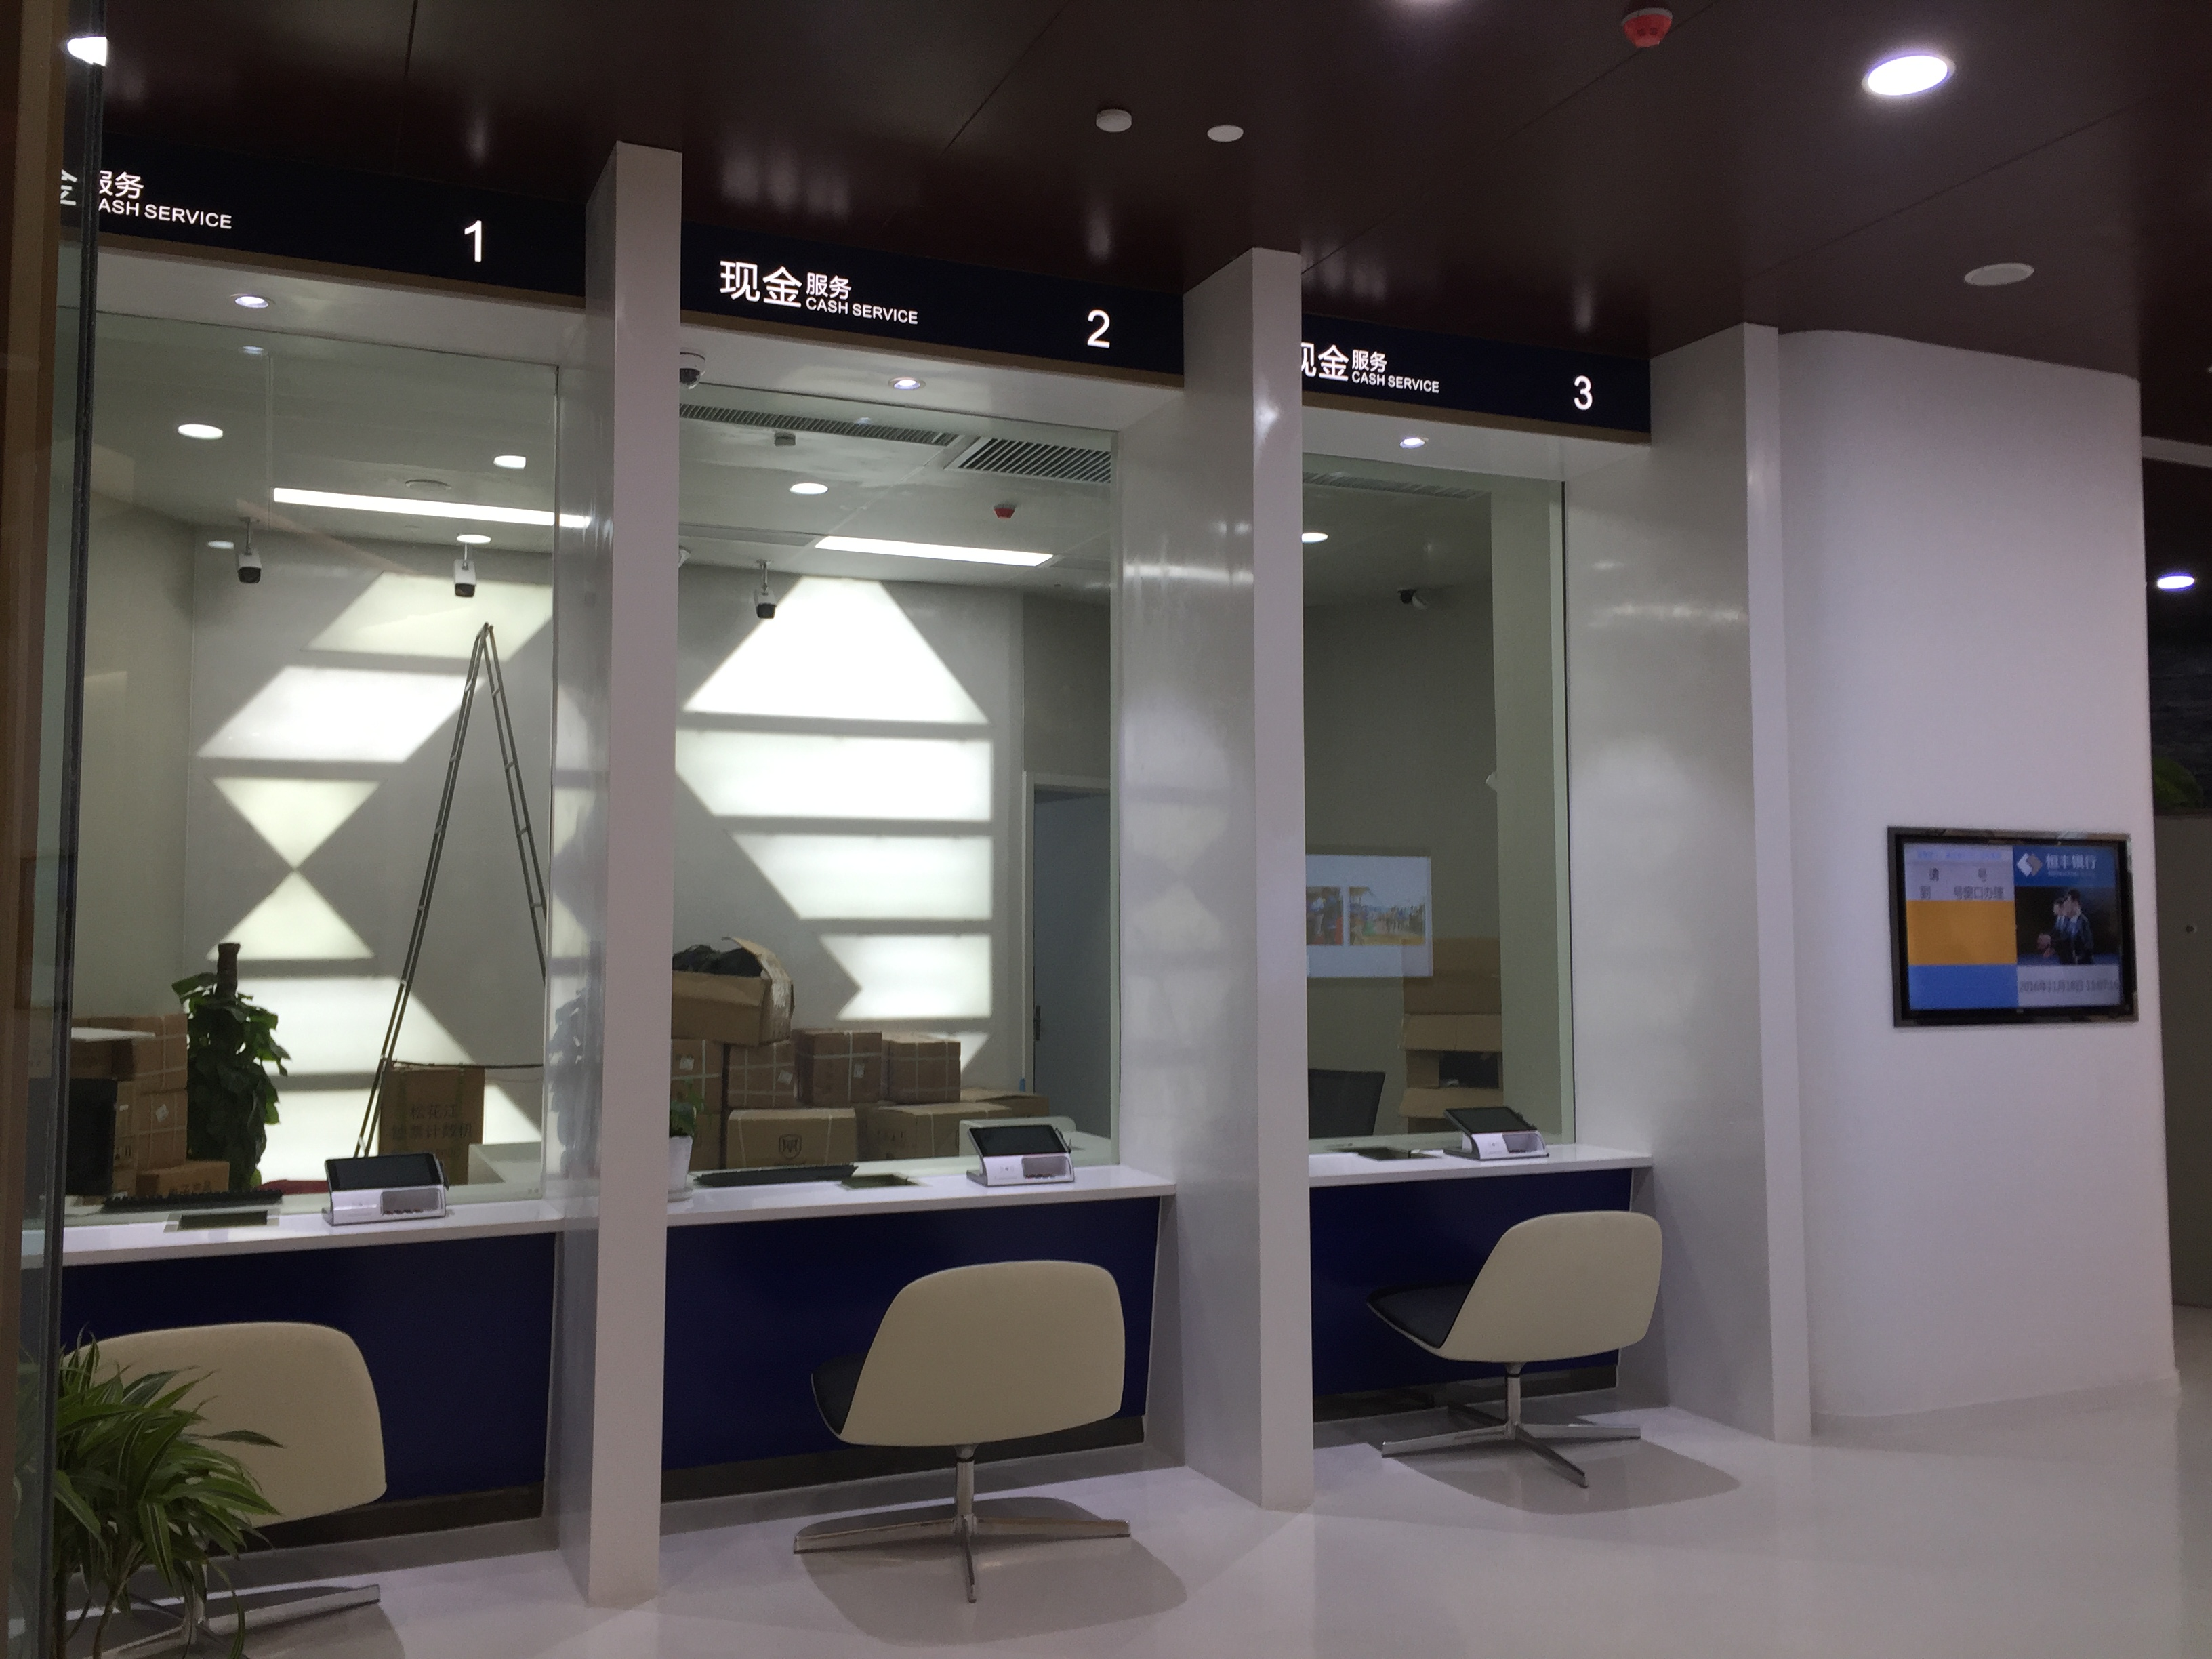 恒丰银行HENGFENG BANK—Bunny lounge chair面包休闲椅(1)